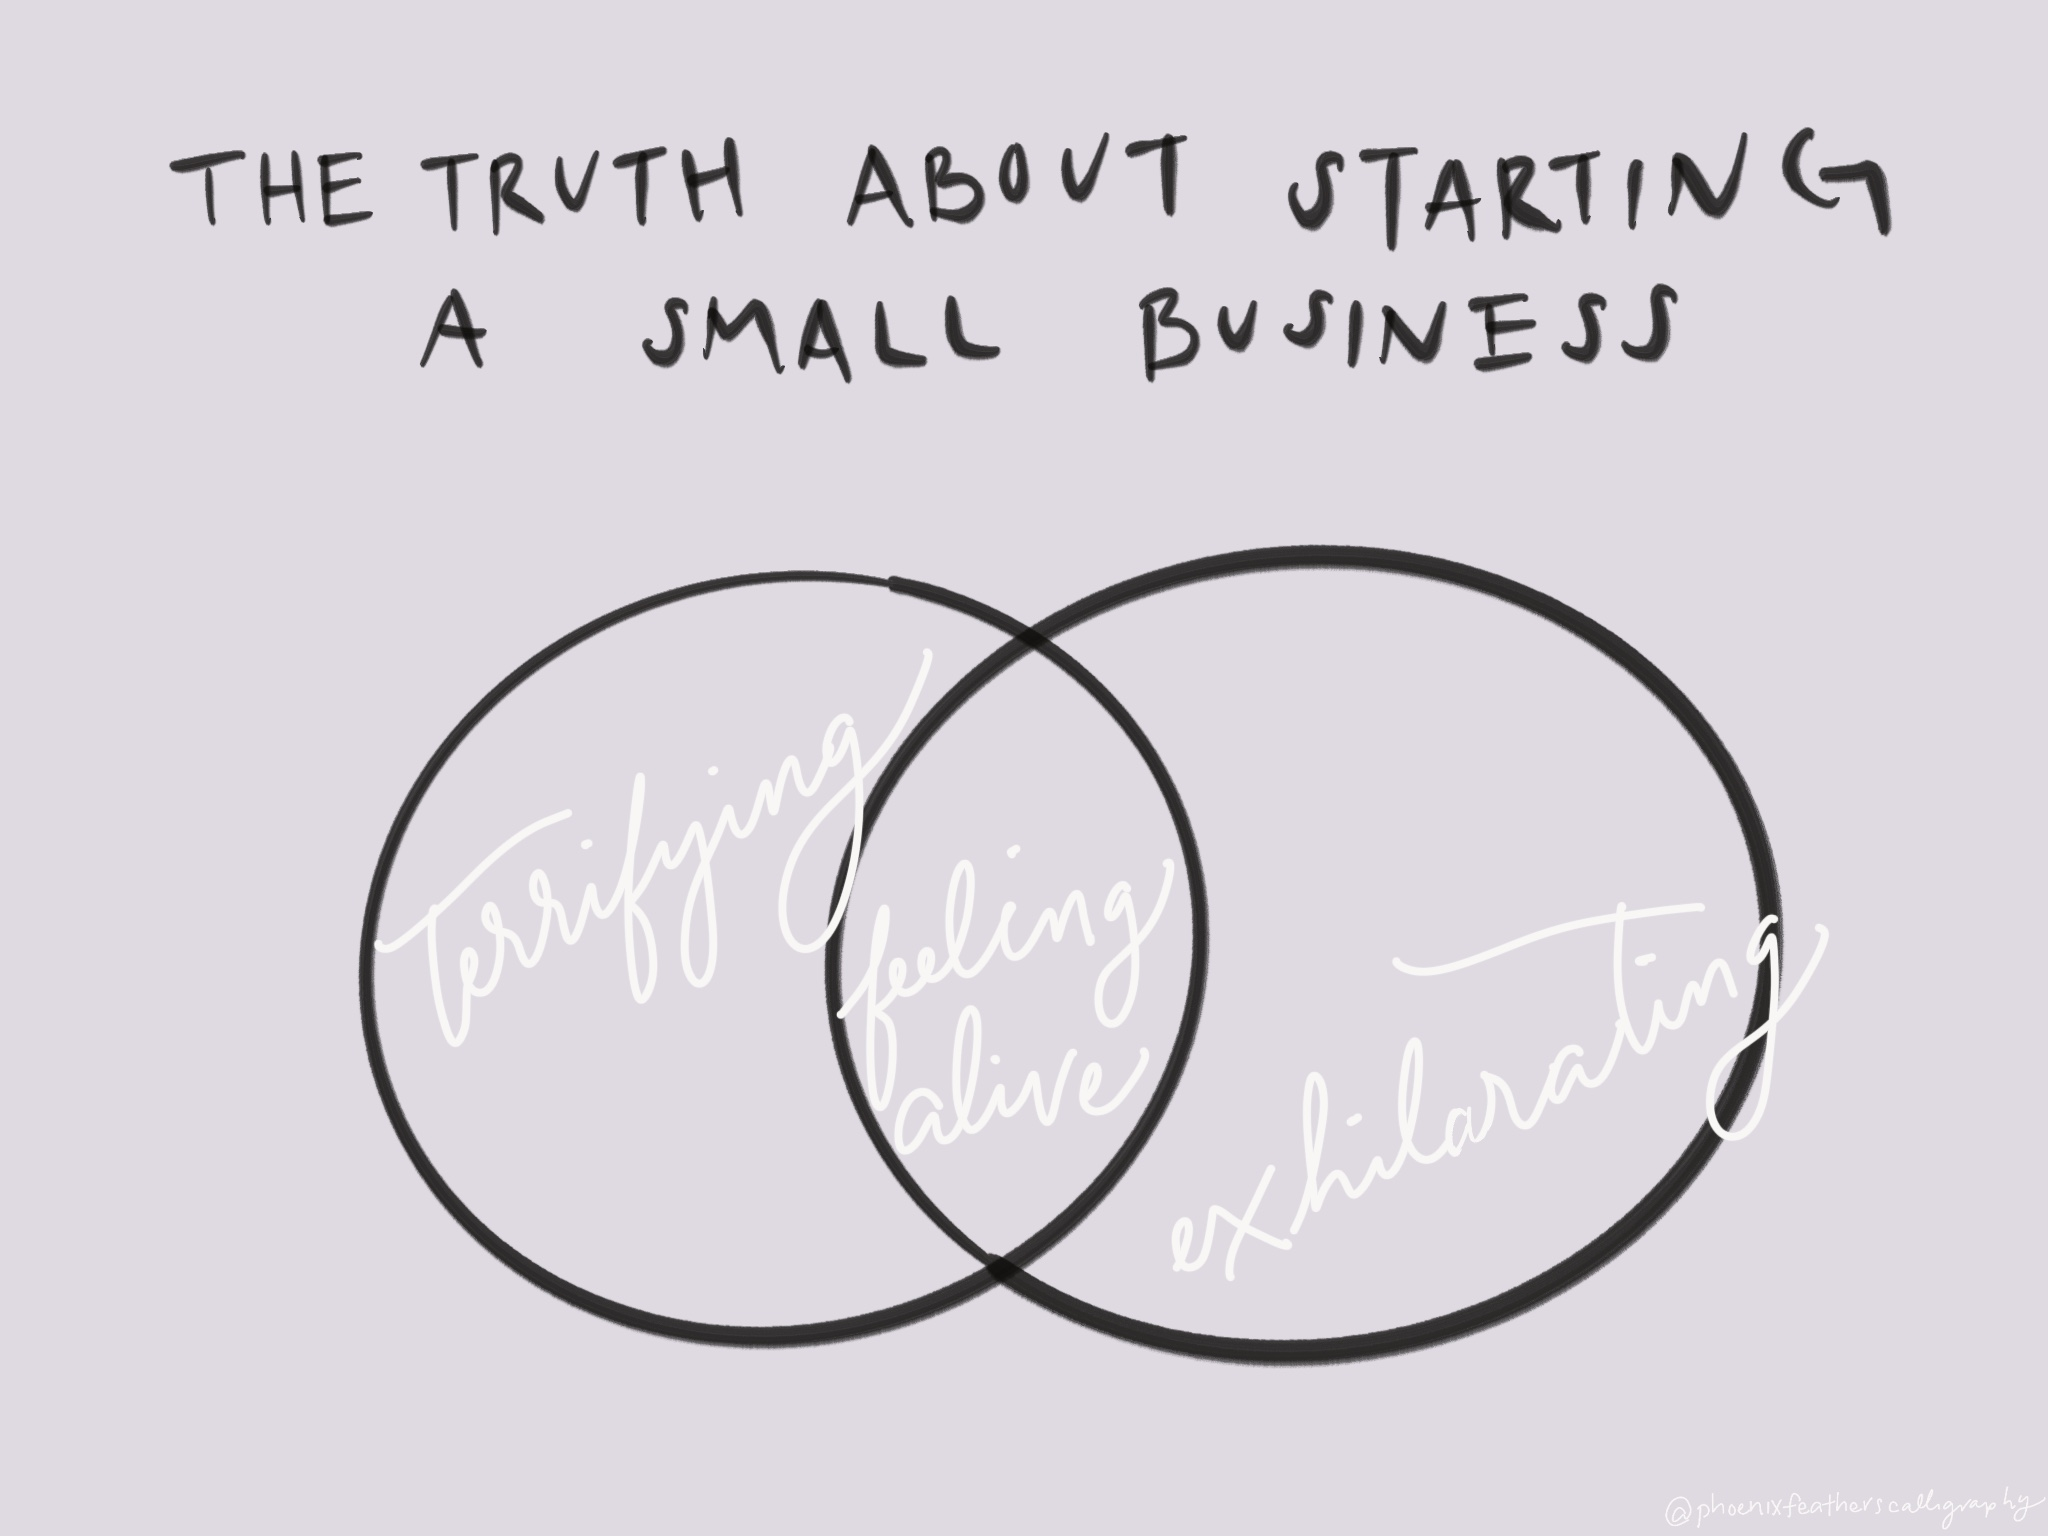 The-truth-about-running-small-business